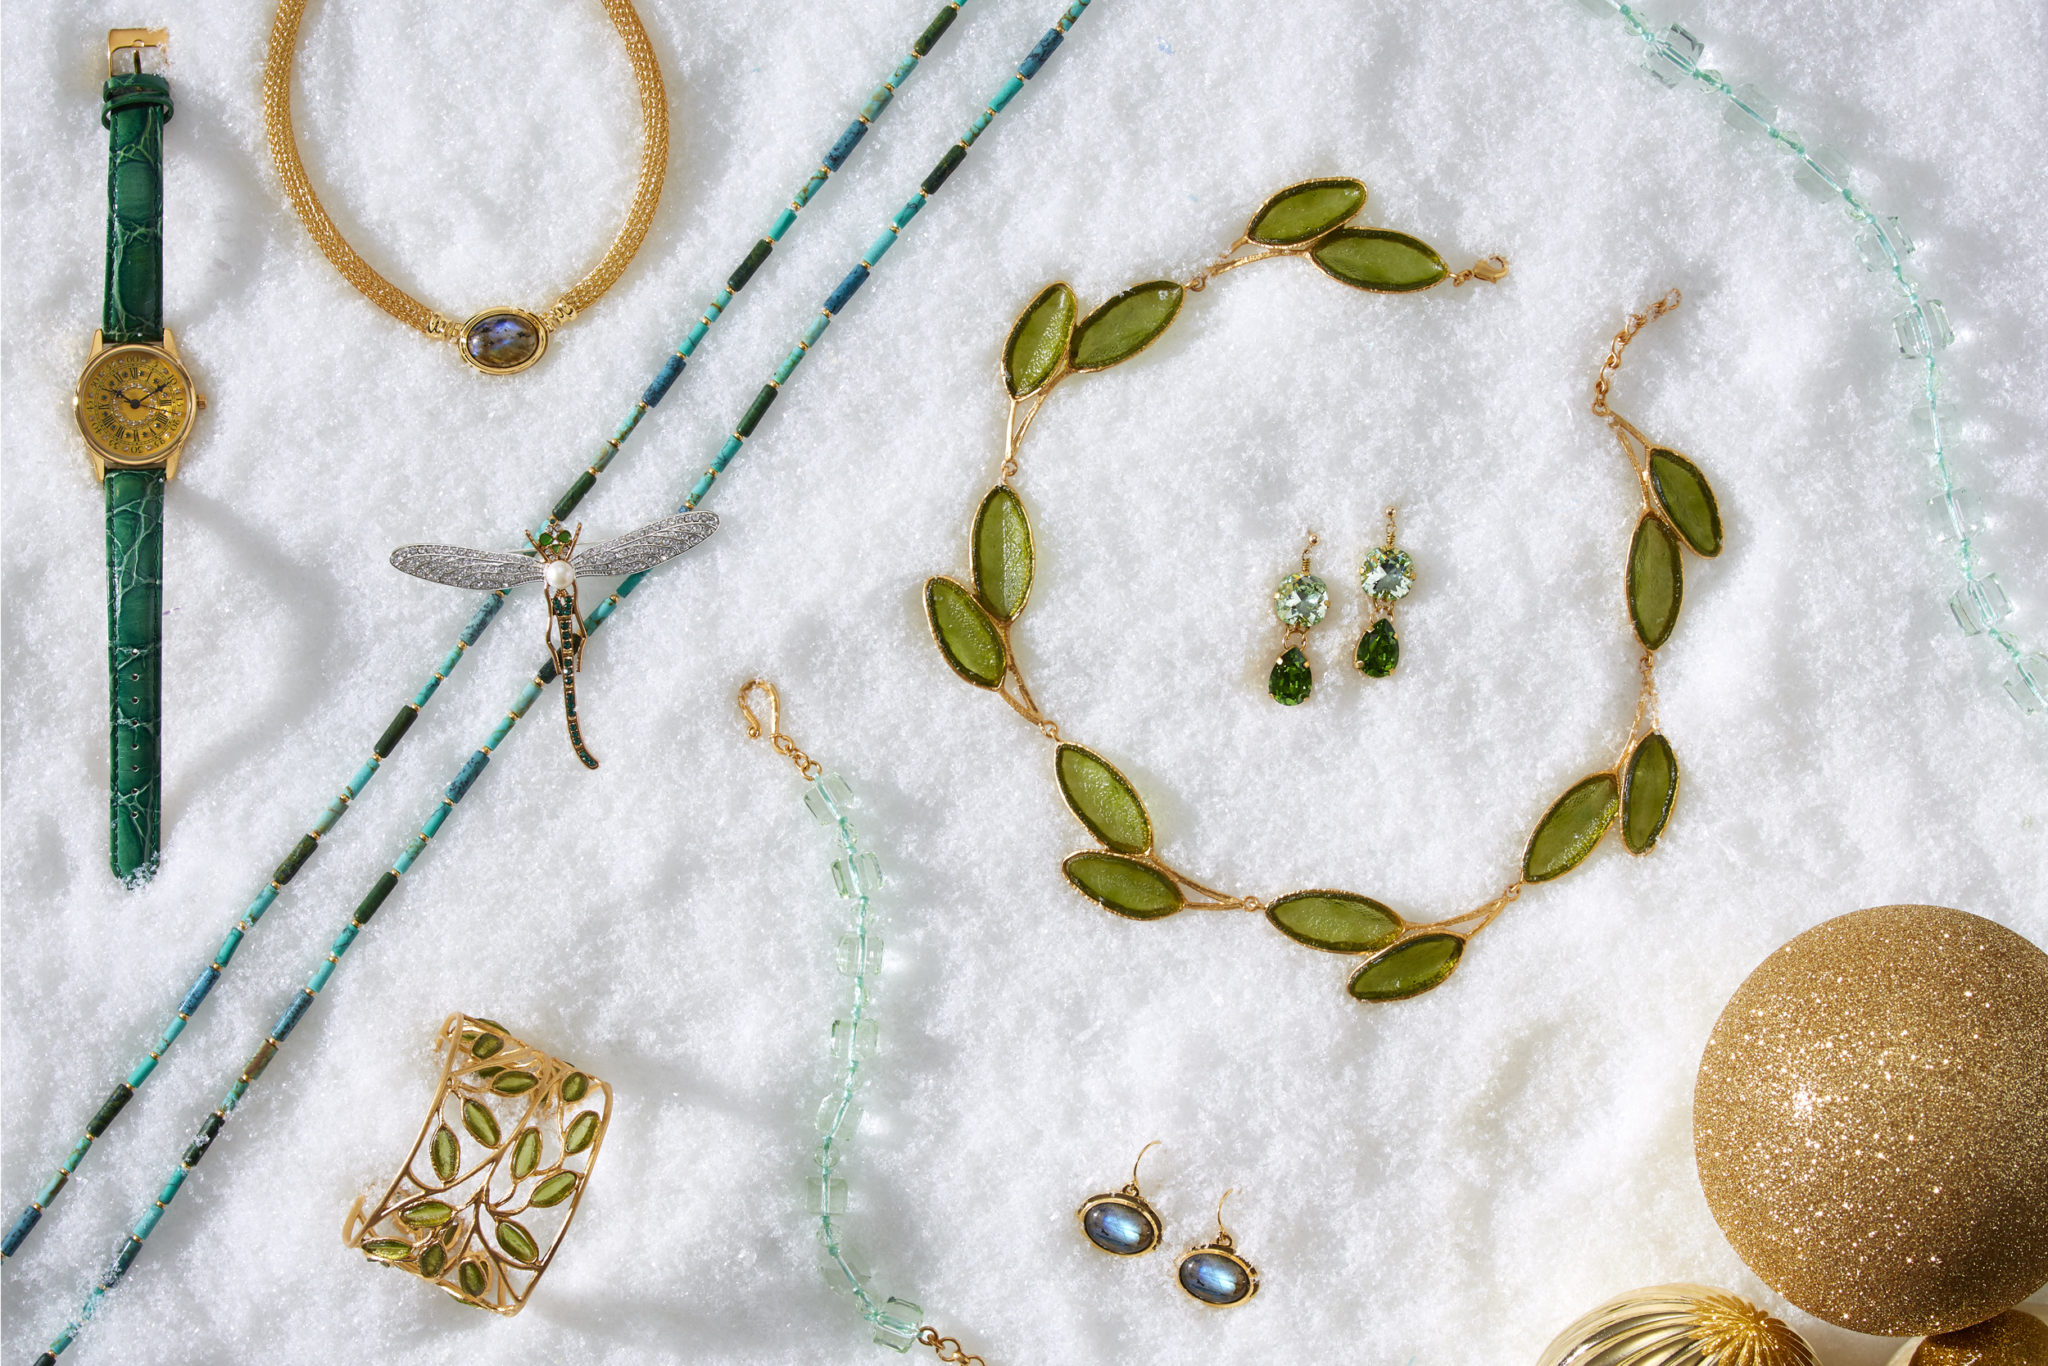 marketing still life photograph of green, gold, and turquoise jewelry including necklaces, earrings, bracelets, a watch, and a pin on snow